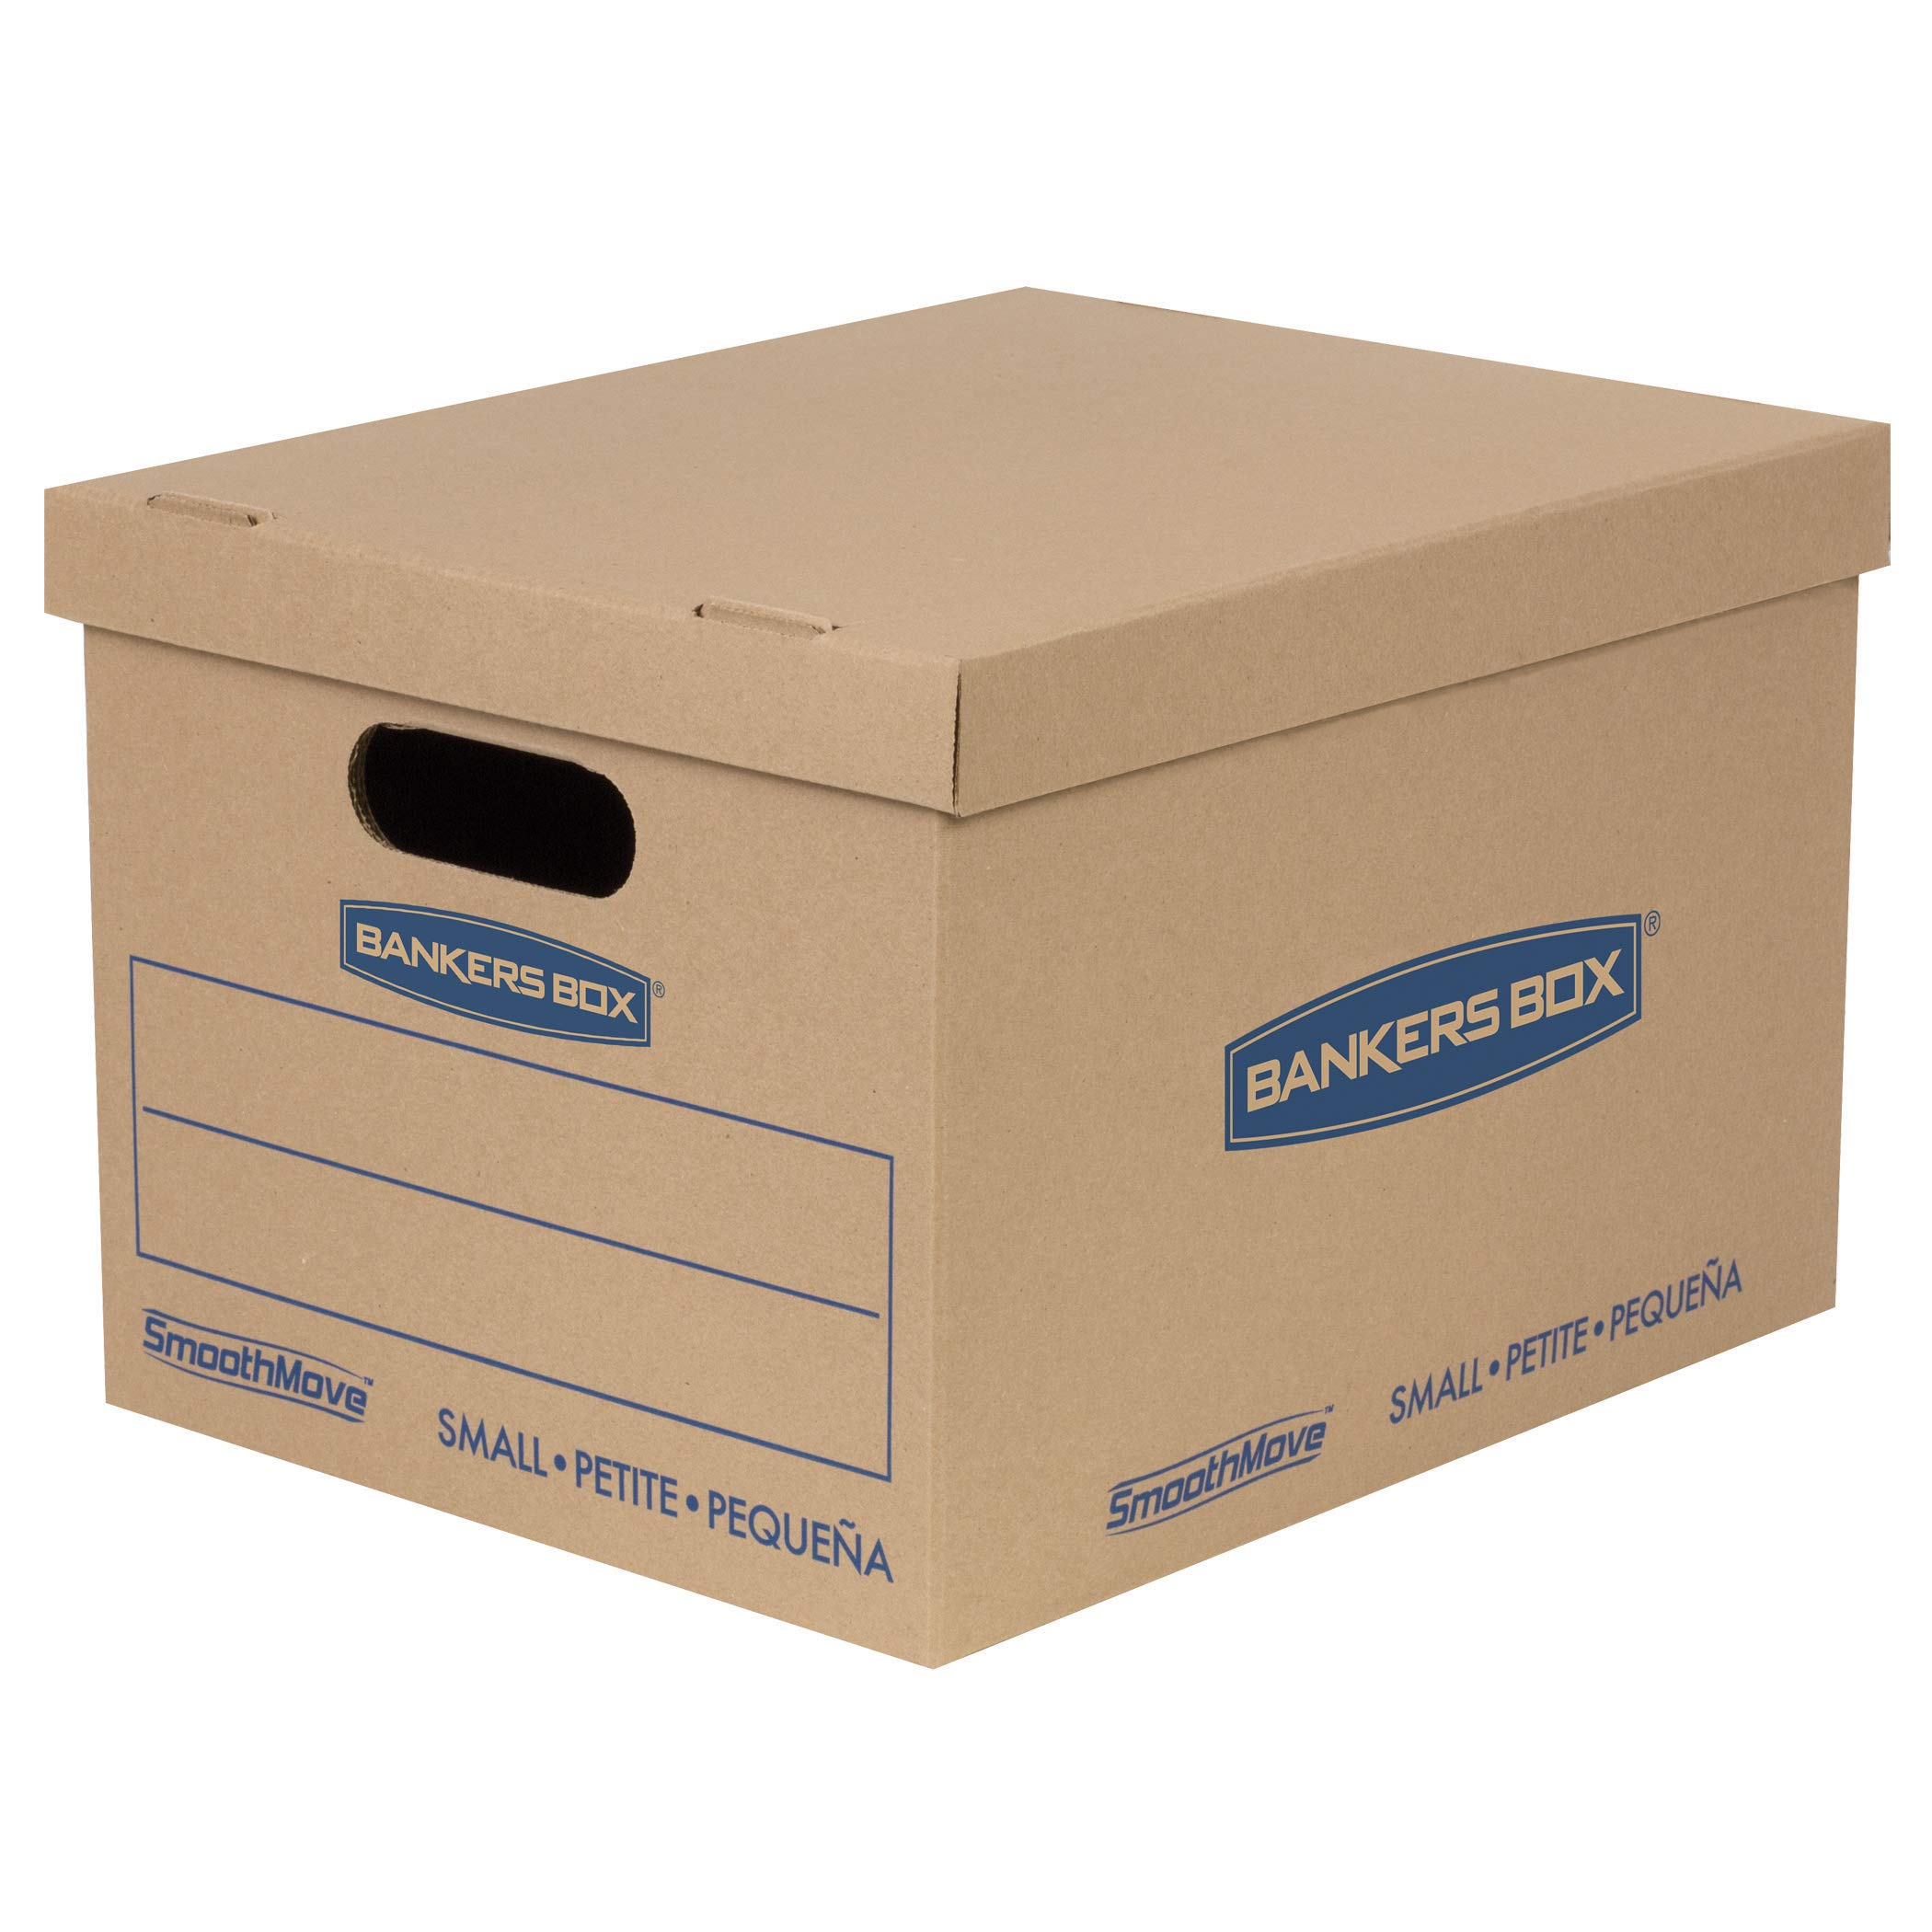 Bankers Box SmoothMove Classic Moving Boxes, Tape-Free Assembly, Easy Carry Handles, Small, 15 x 12 x 10 Inches, 5 Pack (7714902) by Bankers Box